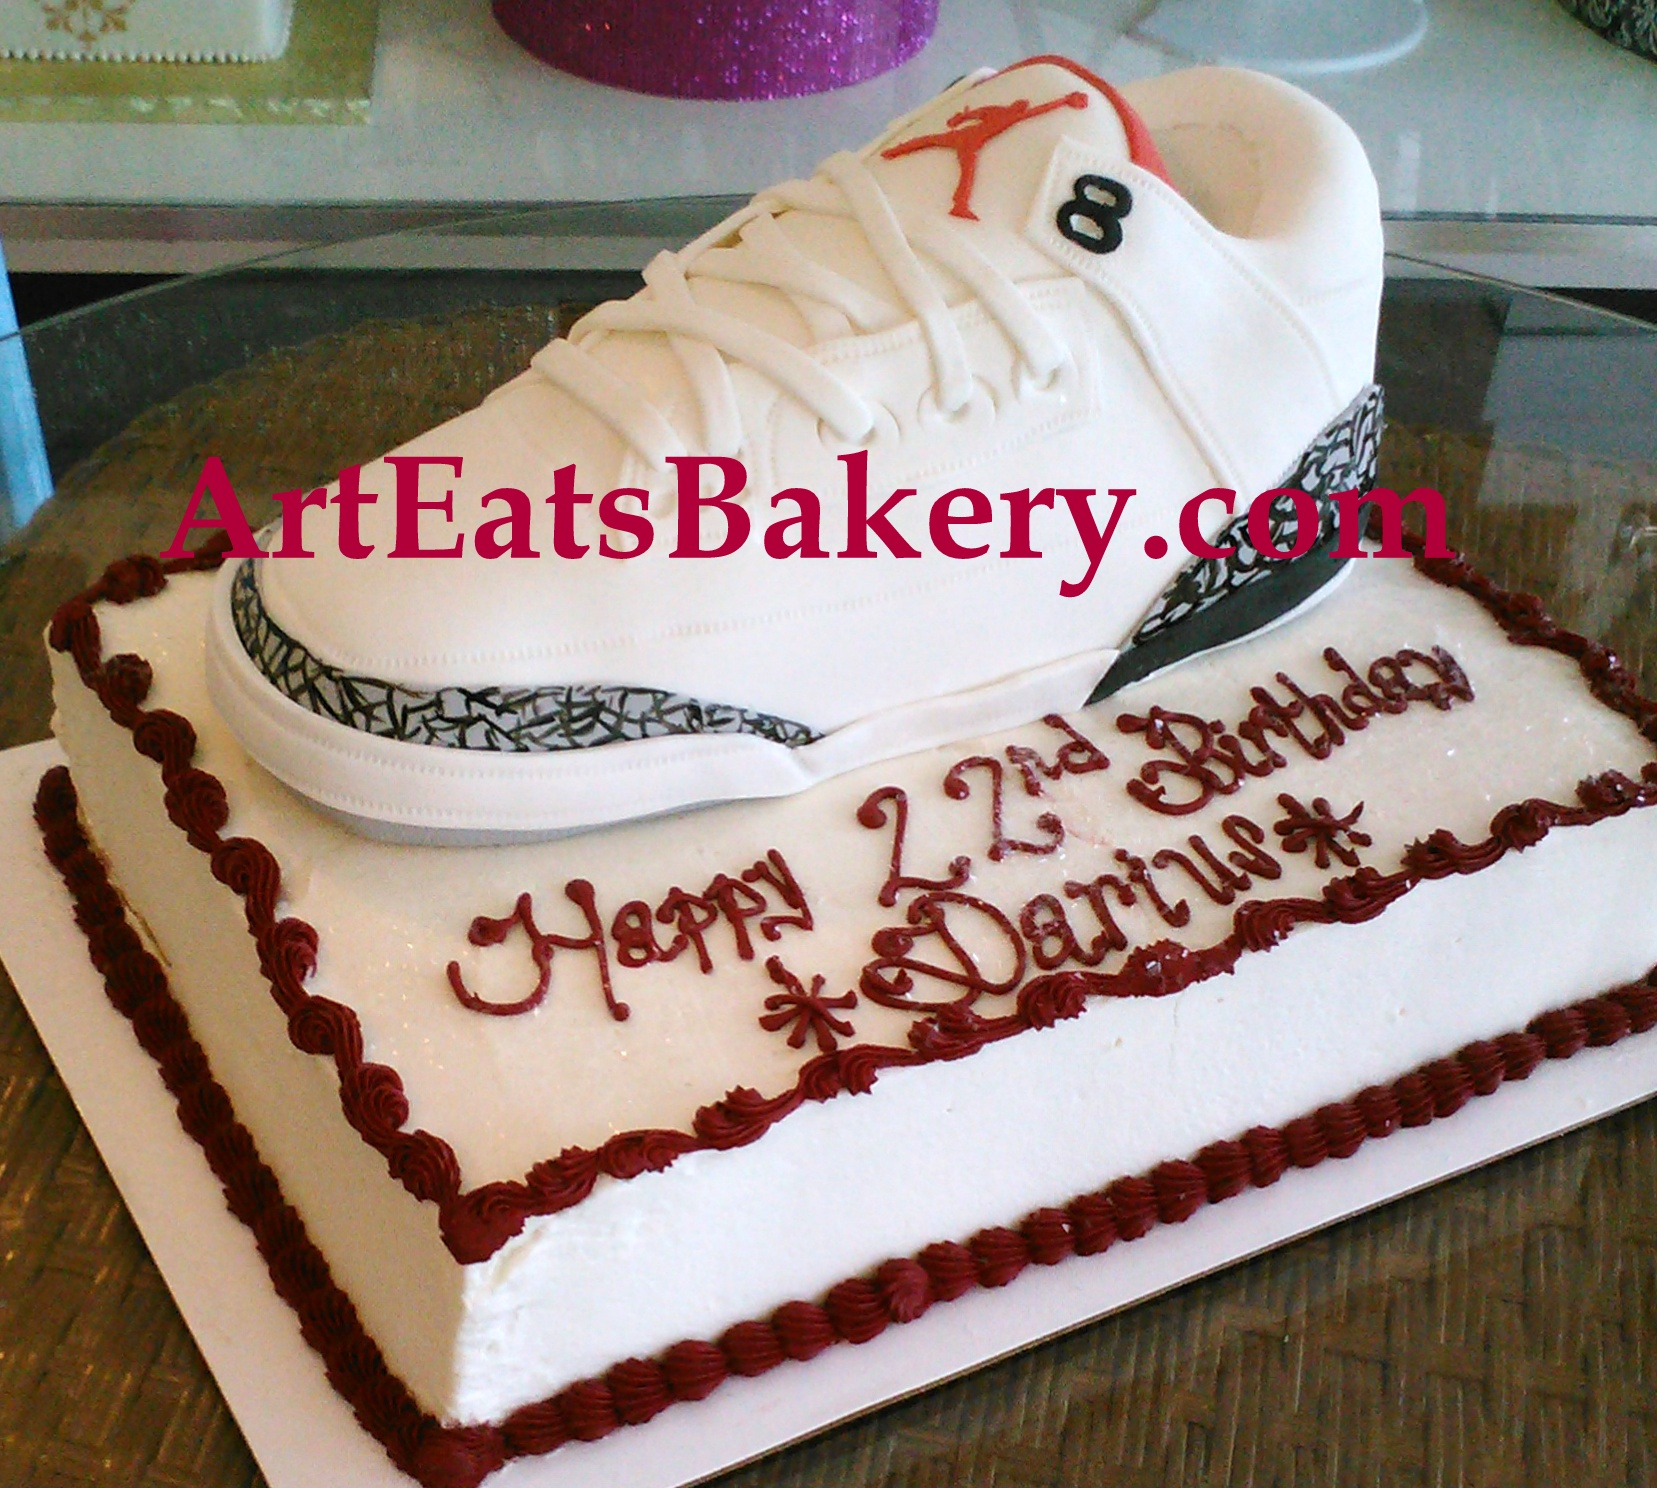 Edible Nike Air Jordan shoe with cement design on men's butter cream birthday cake.jpg